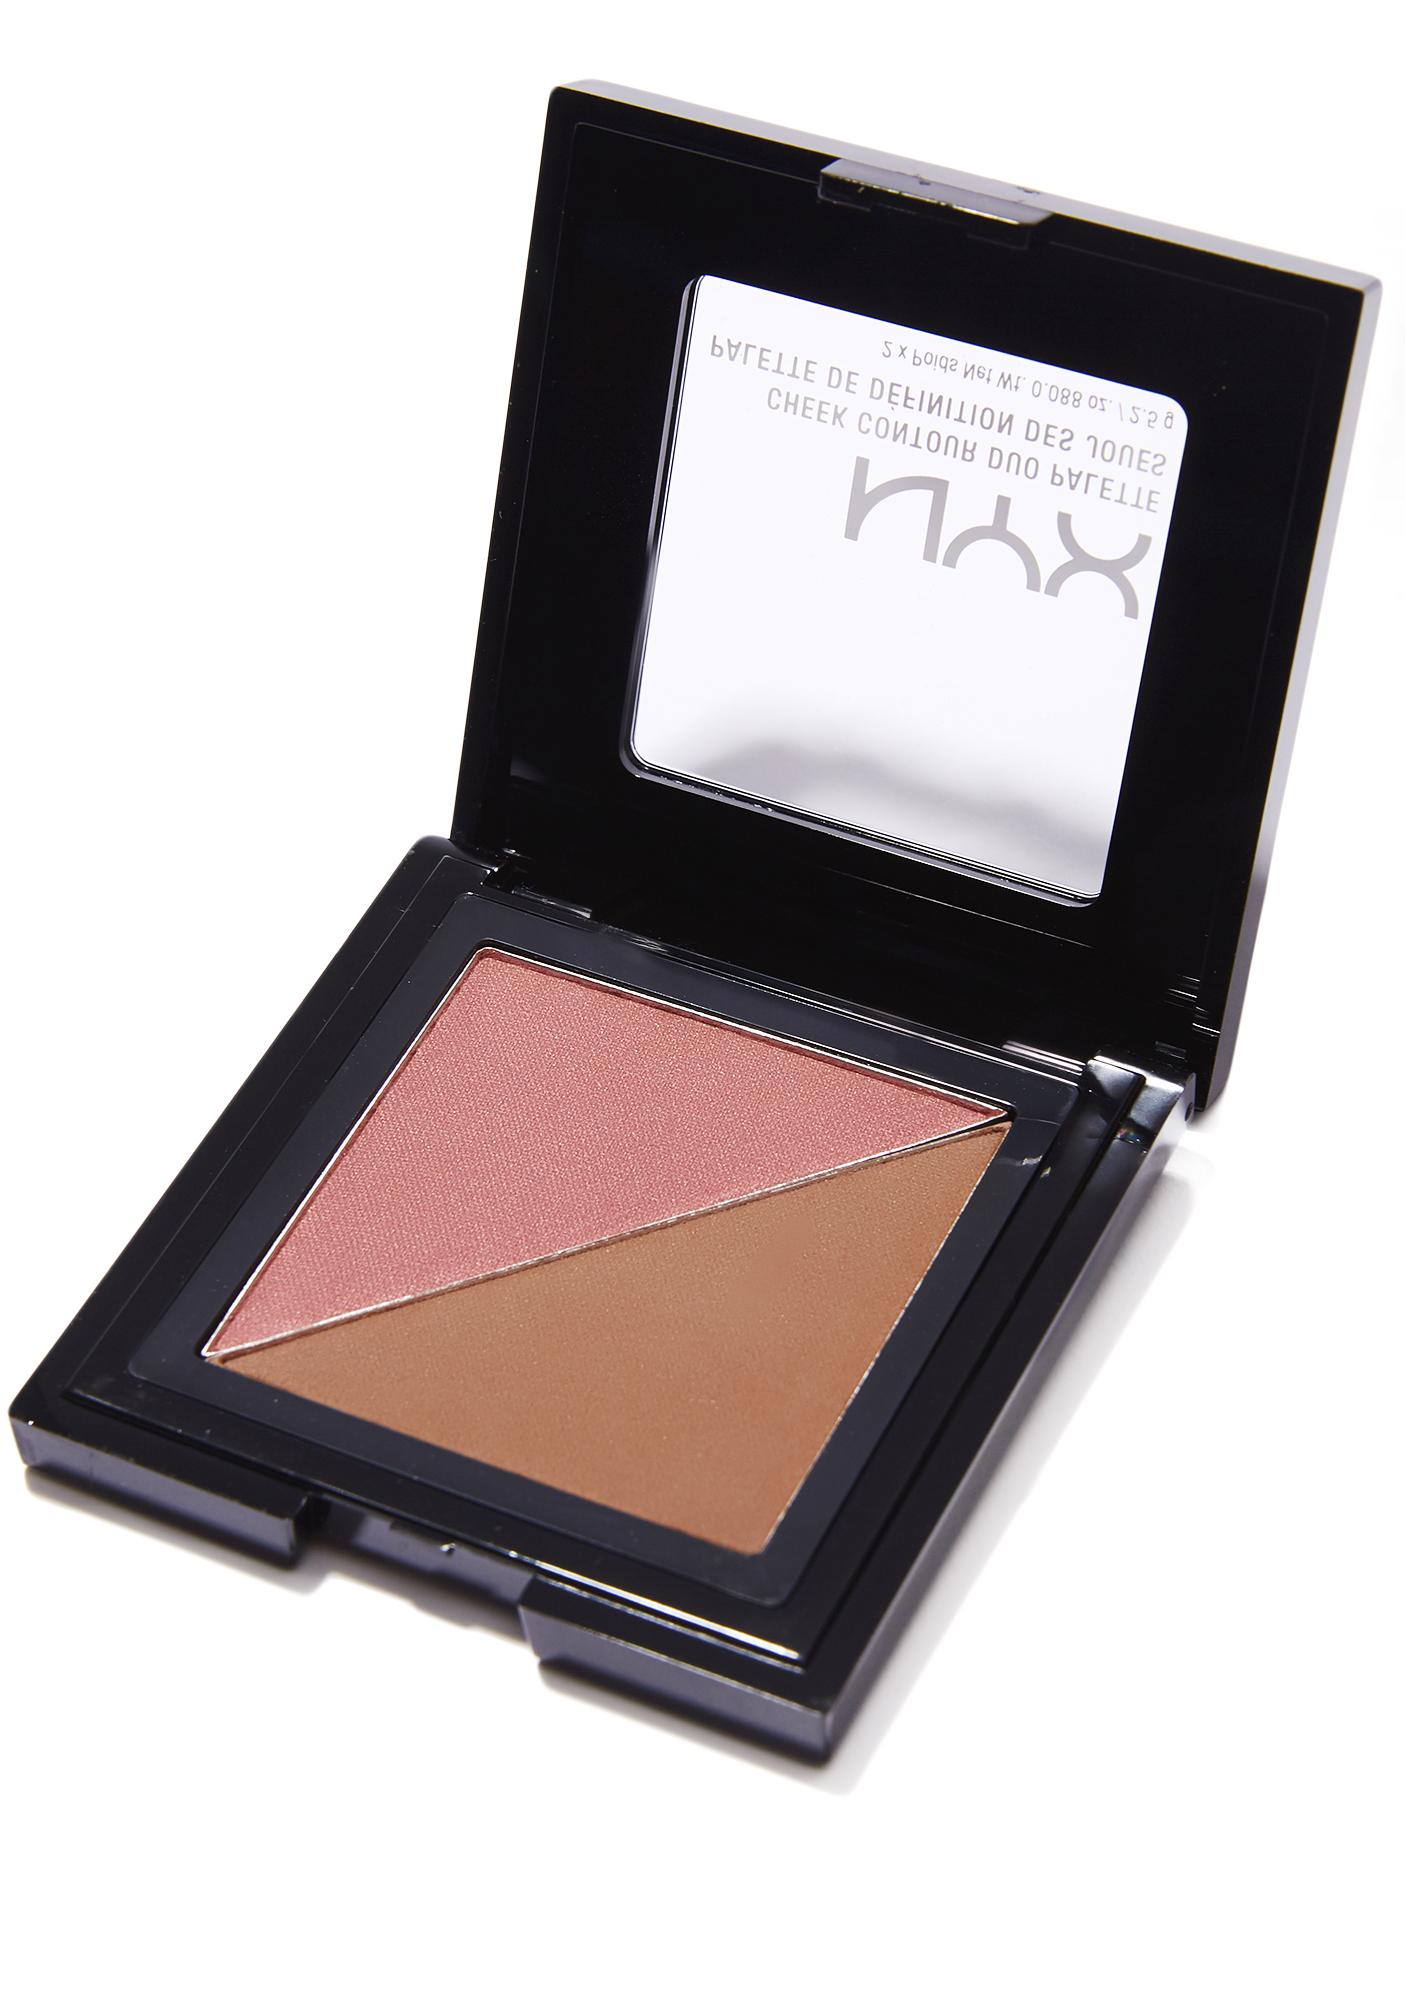 Nyx Wine Amp Dine Cheek Contour Duo Palette Dolls Kill